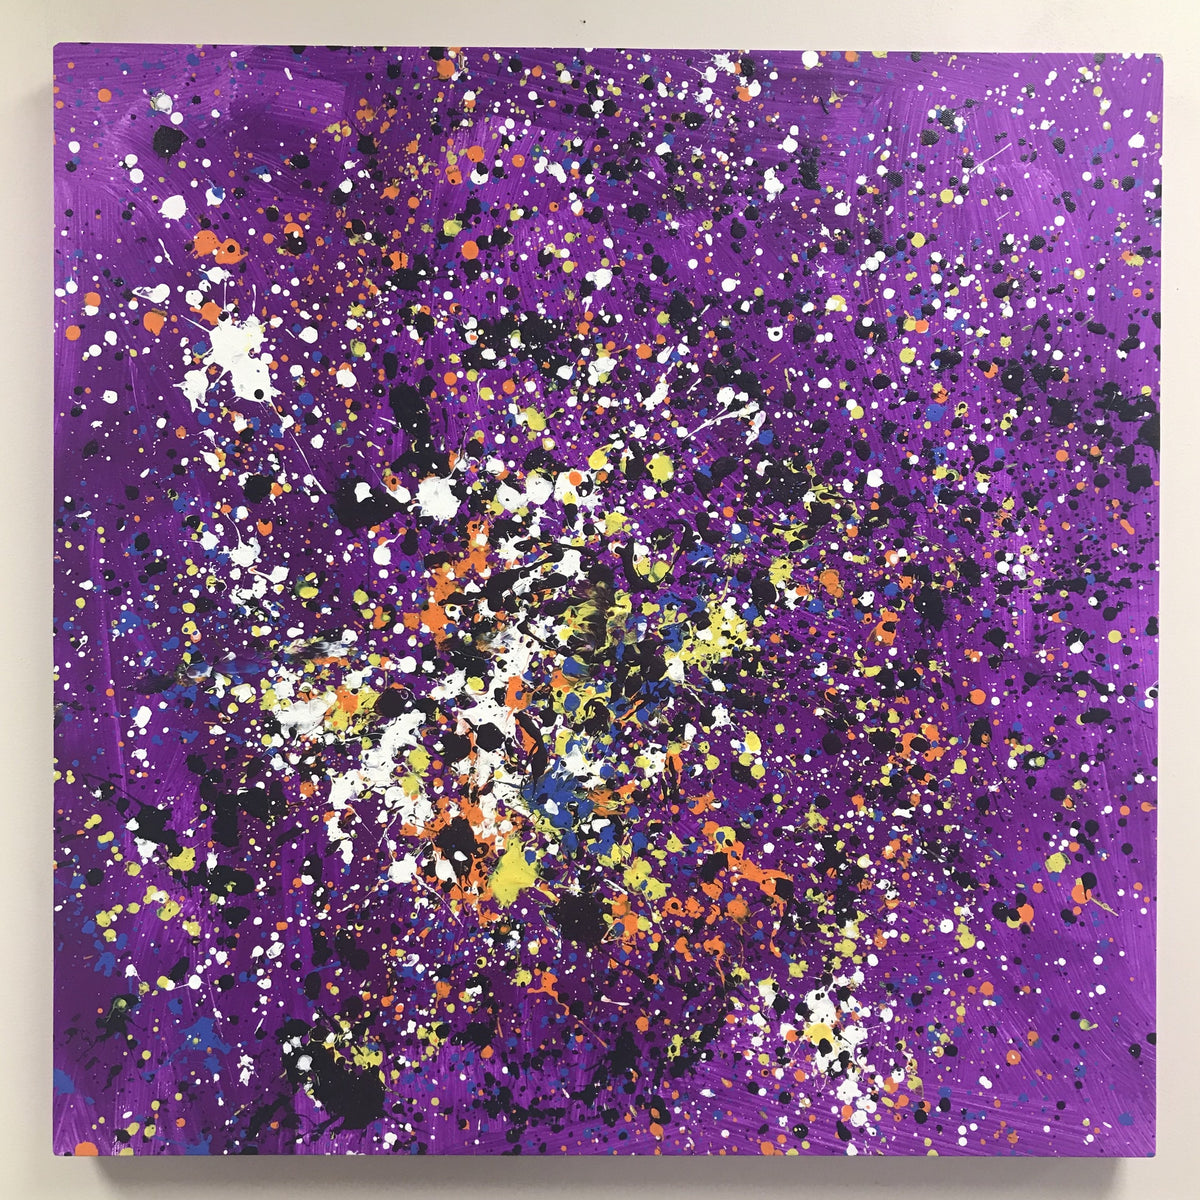 Anxiety & Stress Reduction for Pre-teens and Teens (ages 11-15): Splatter painting